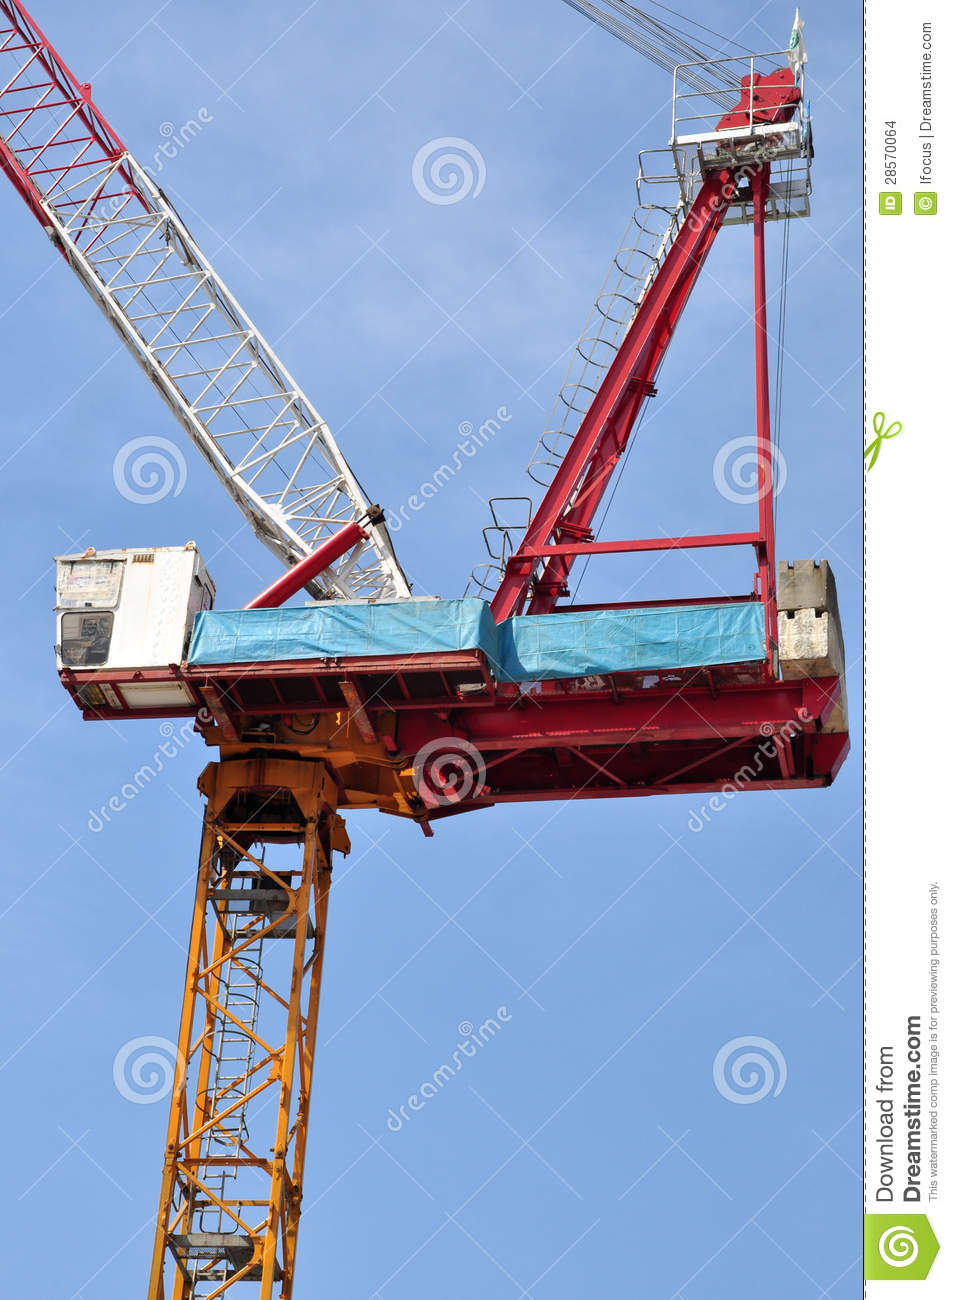 Jib Crane Usage : Luffing jib tower crane against blue sky stock images